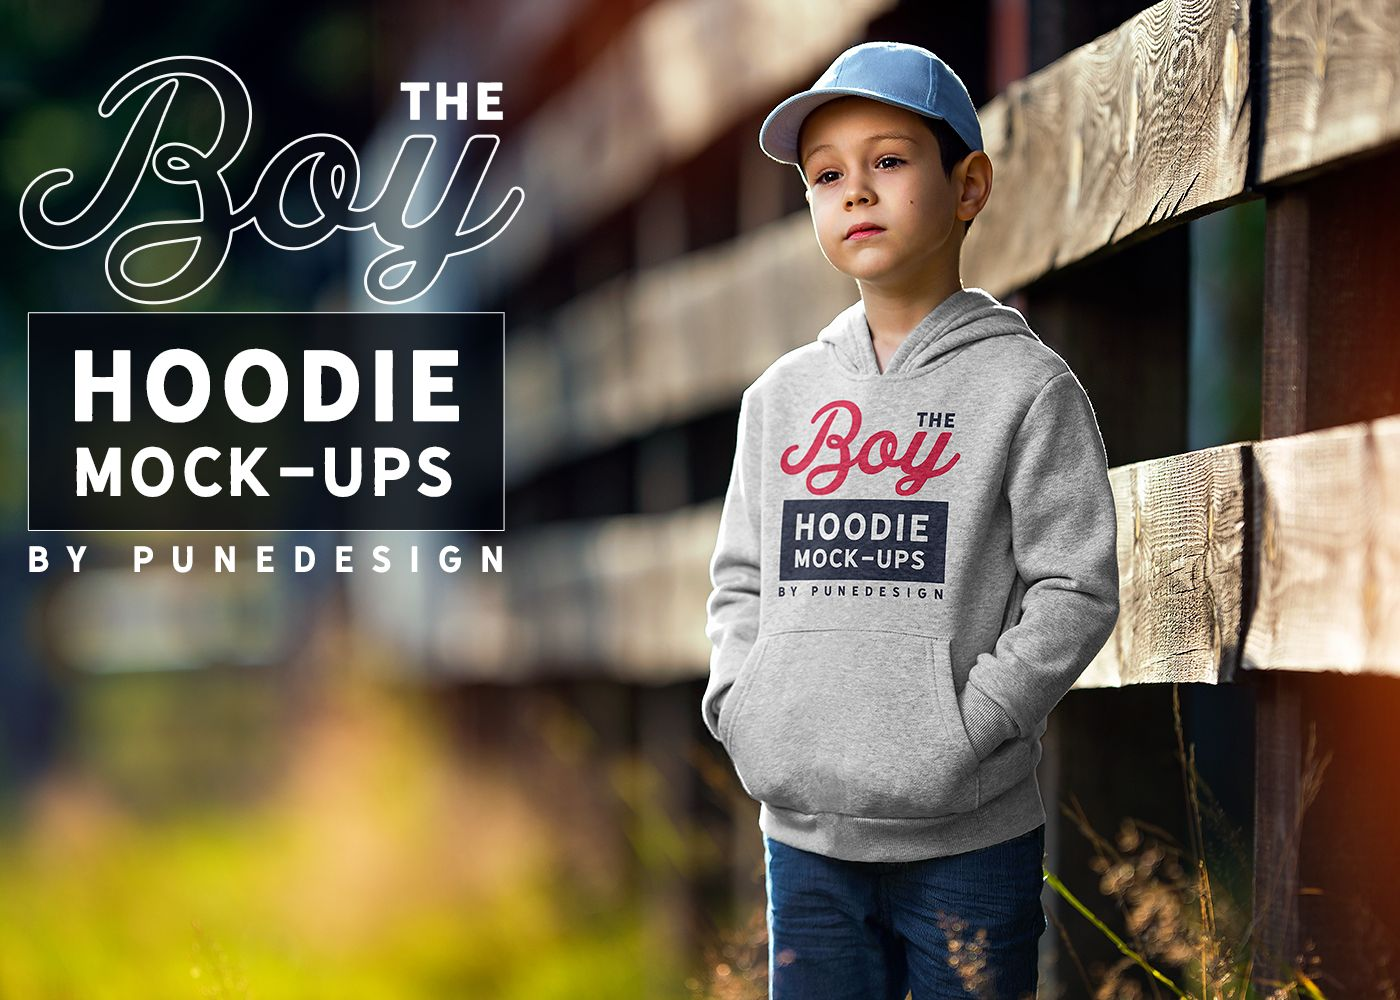 Boy_Hoodie_Mock-Up_by_PuneDesign-00